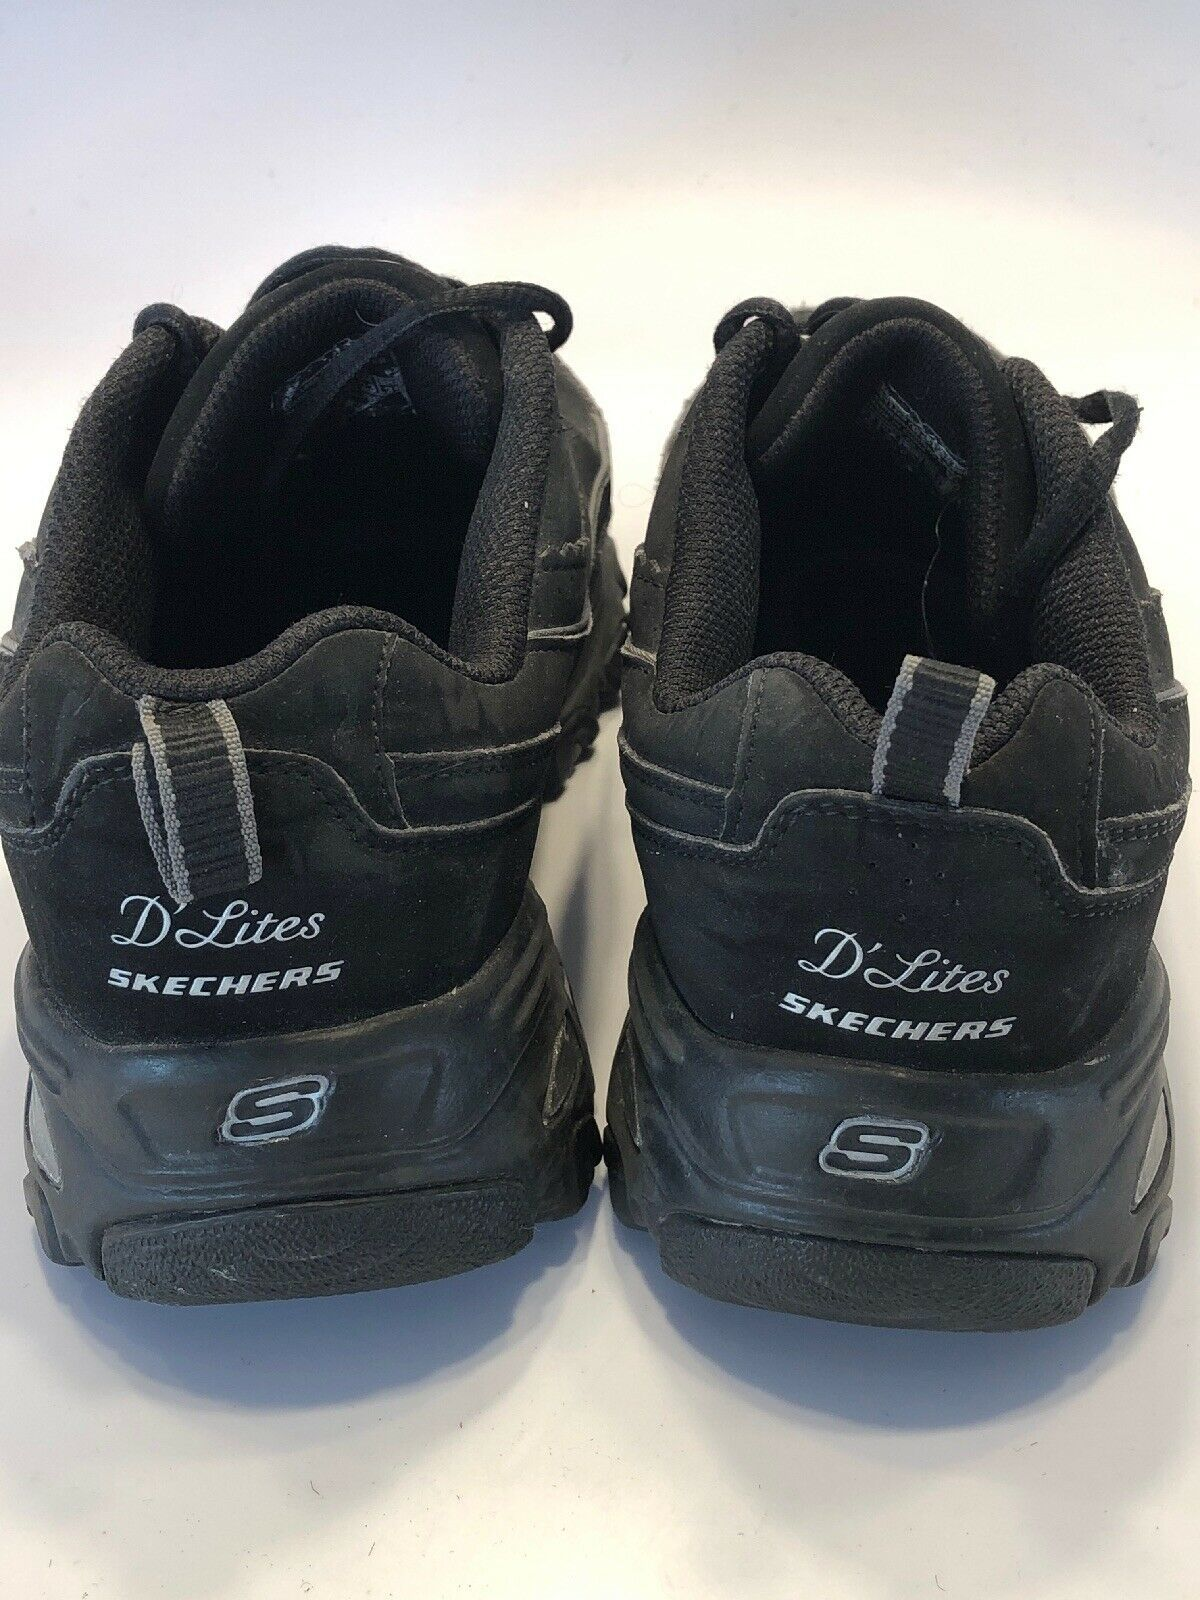 Women's Size 6 Skechers Sport D'Lites Black Leather 11469 Lace Up Shoes Sneakers